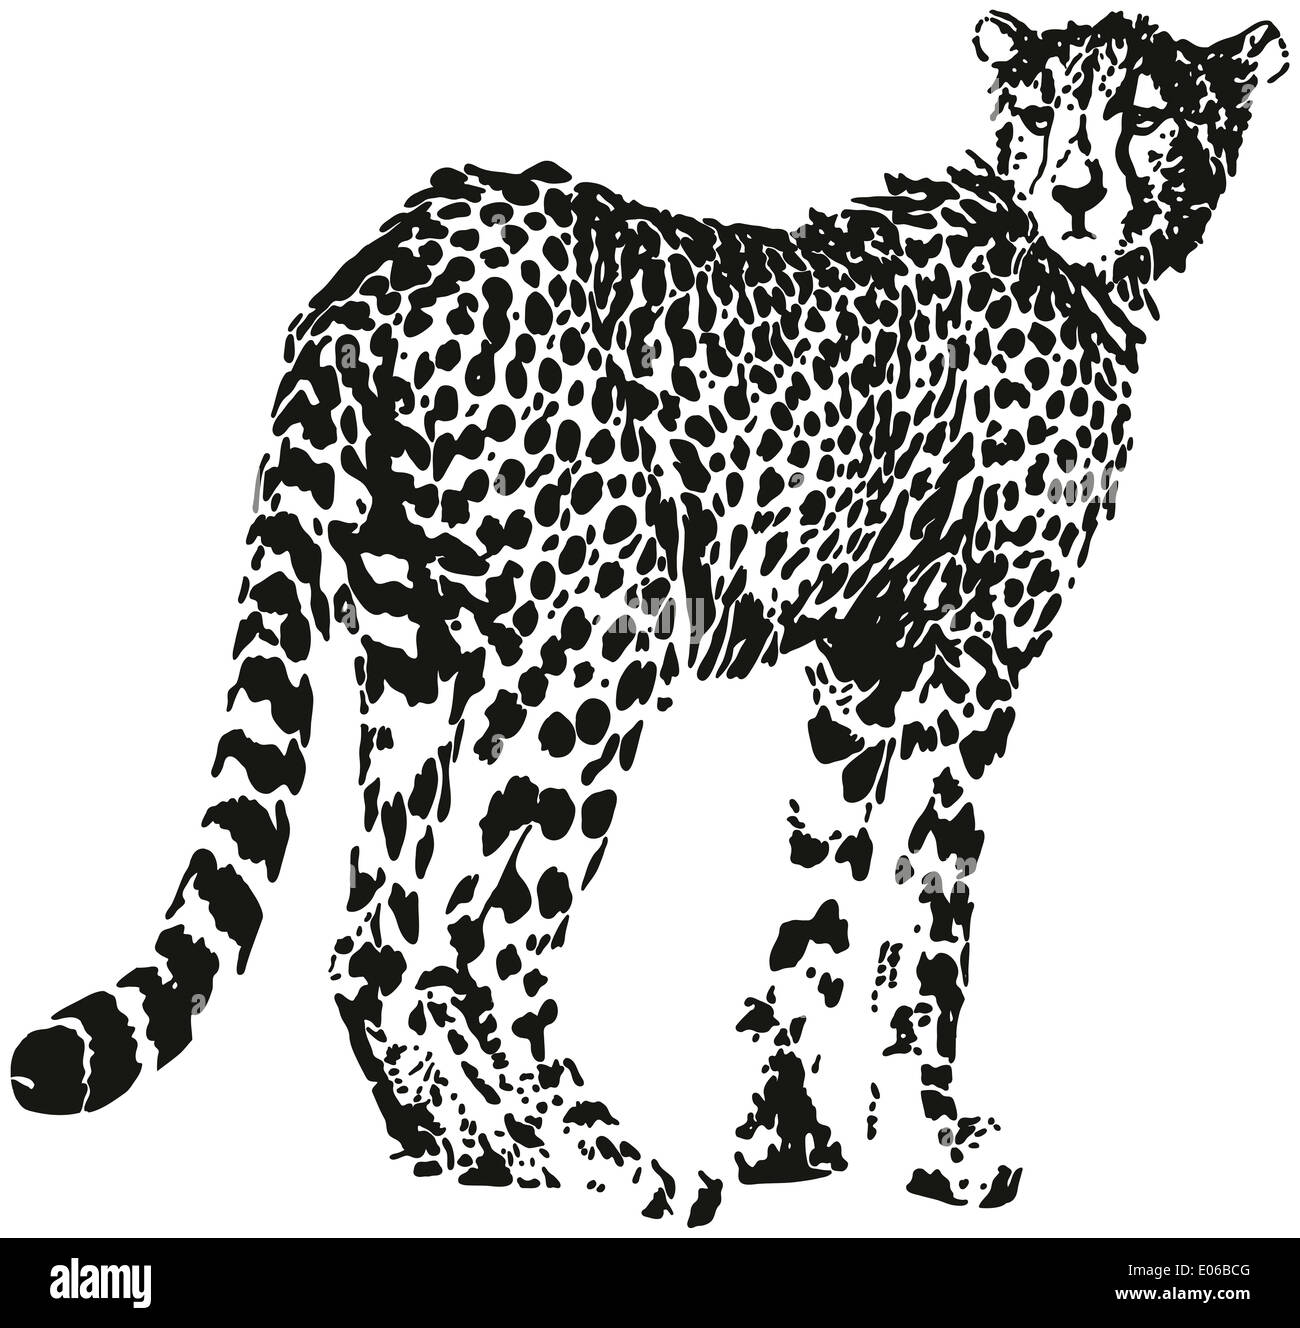 Leopard - big cat shaped from black spots - optical illusion. - Stock Image